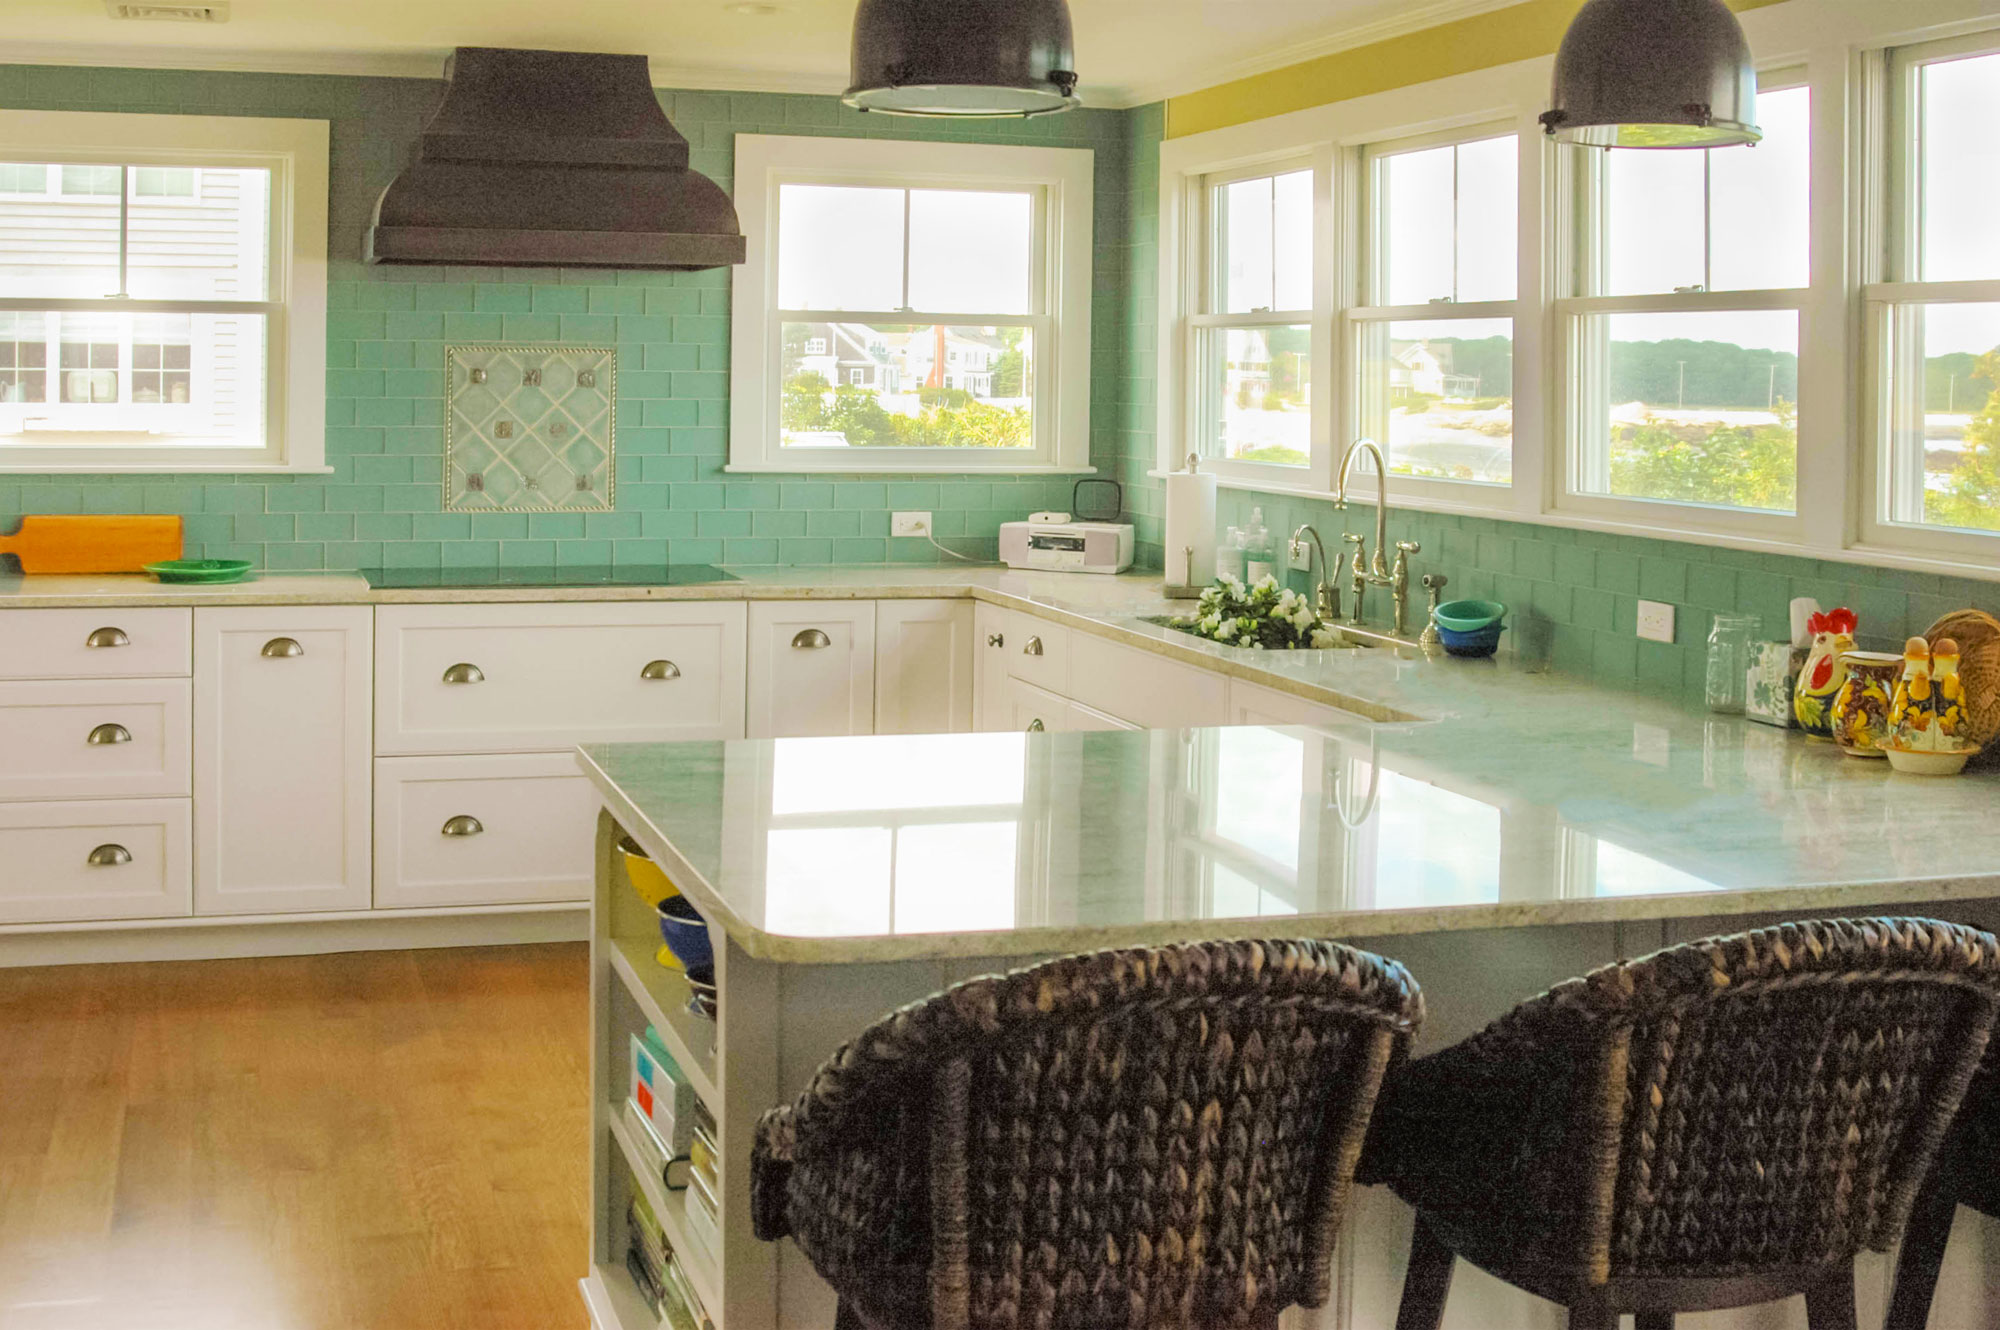 Kitchen at Granite Point, Custom Home Construction in Southern Maine